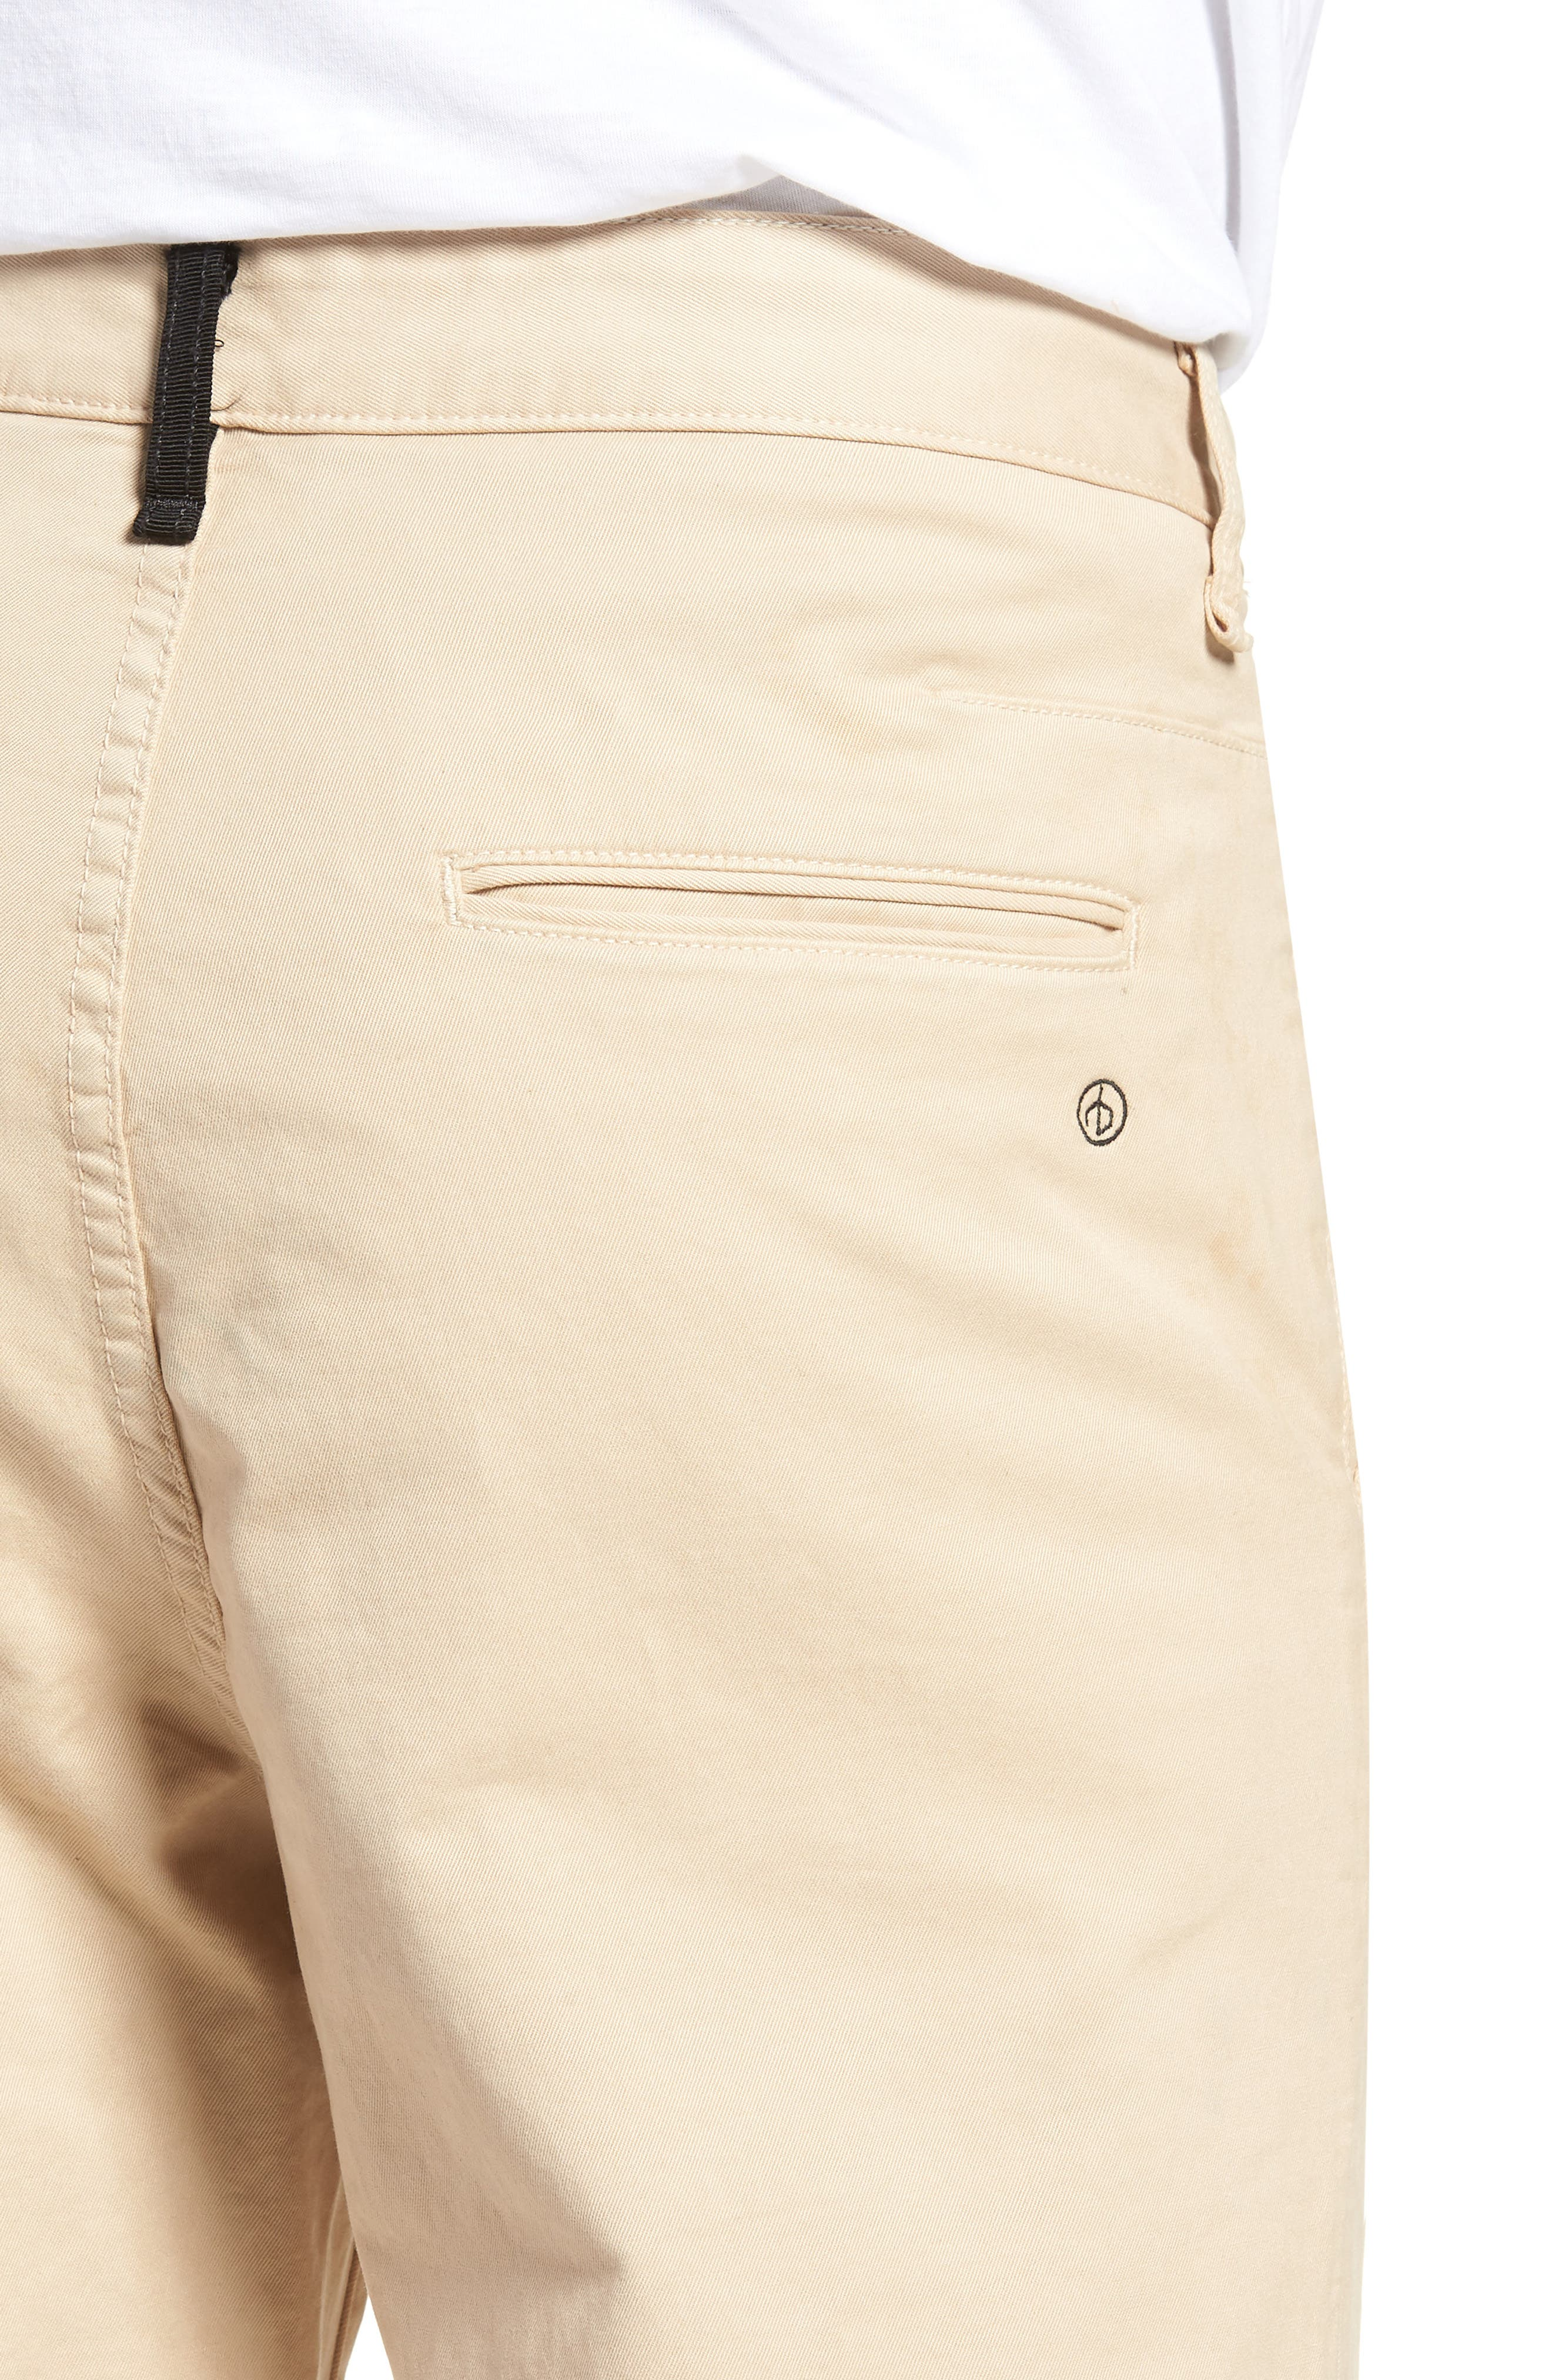 Fit 3 Classic Chino,                             Alternate thumbnail 4, color,                             Beige